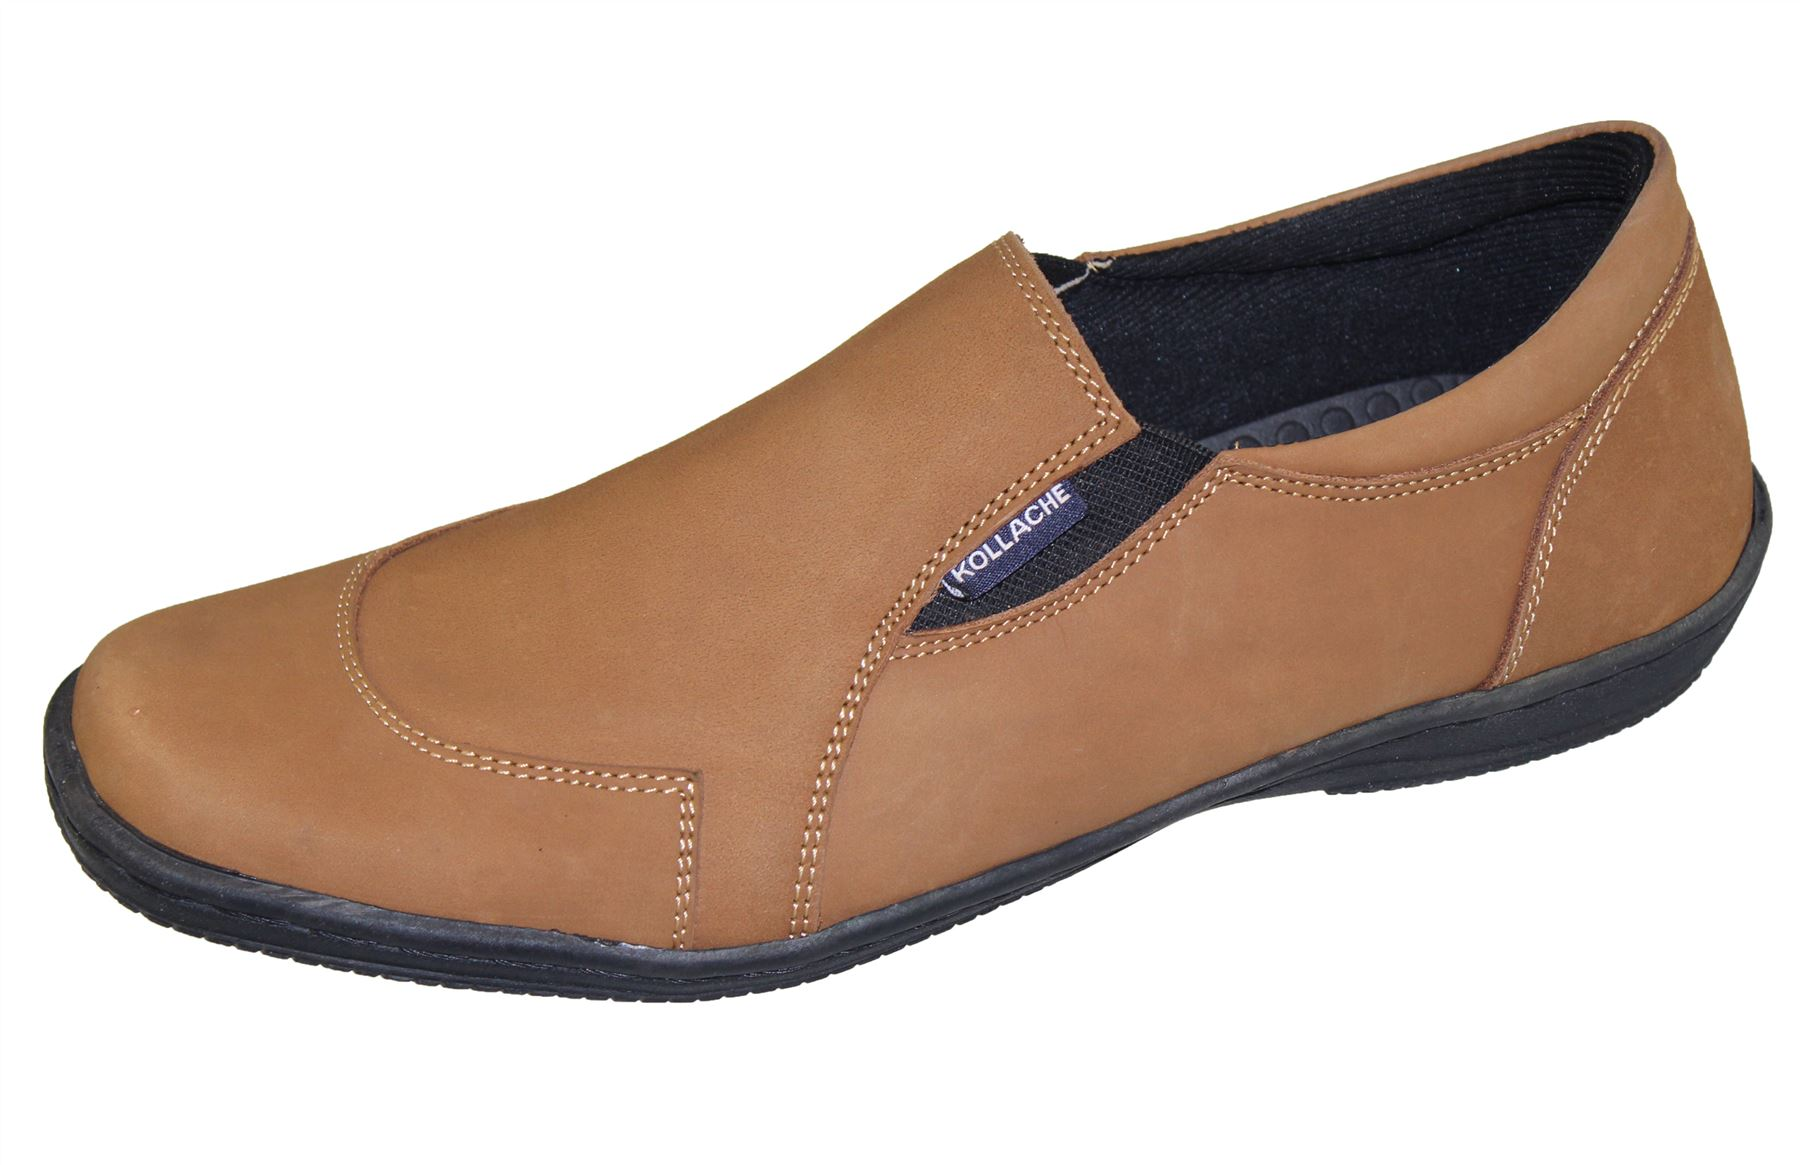 Mens Slipon Walking Shoes